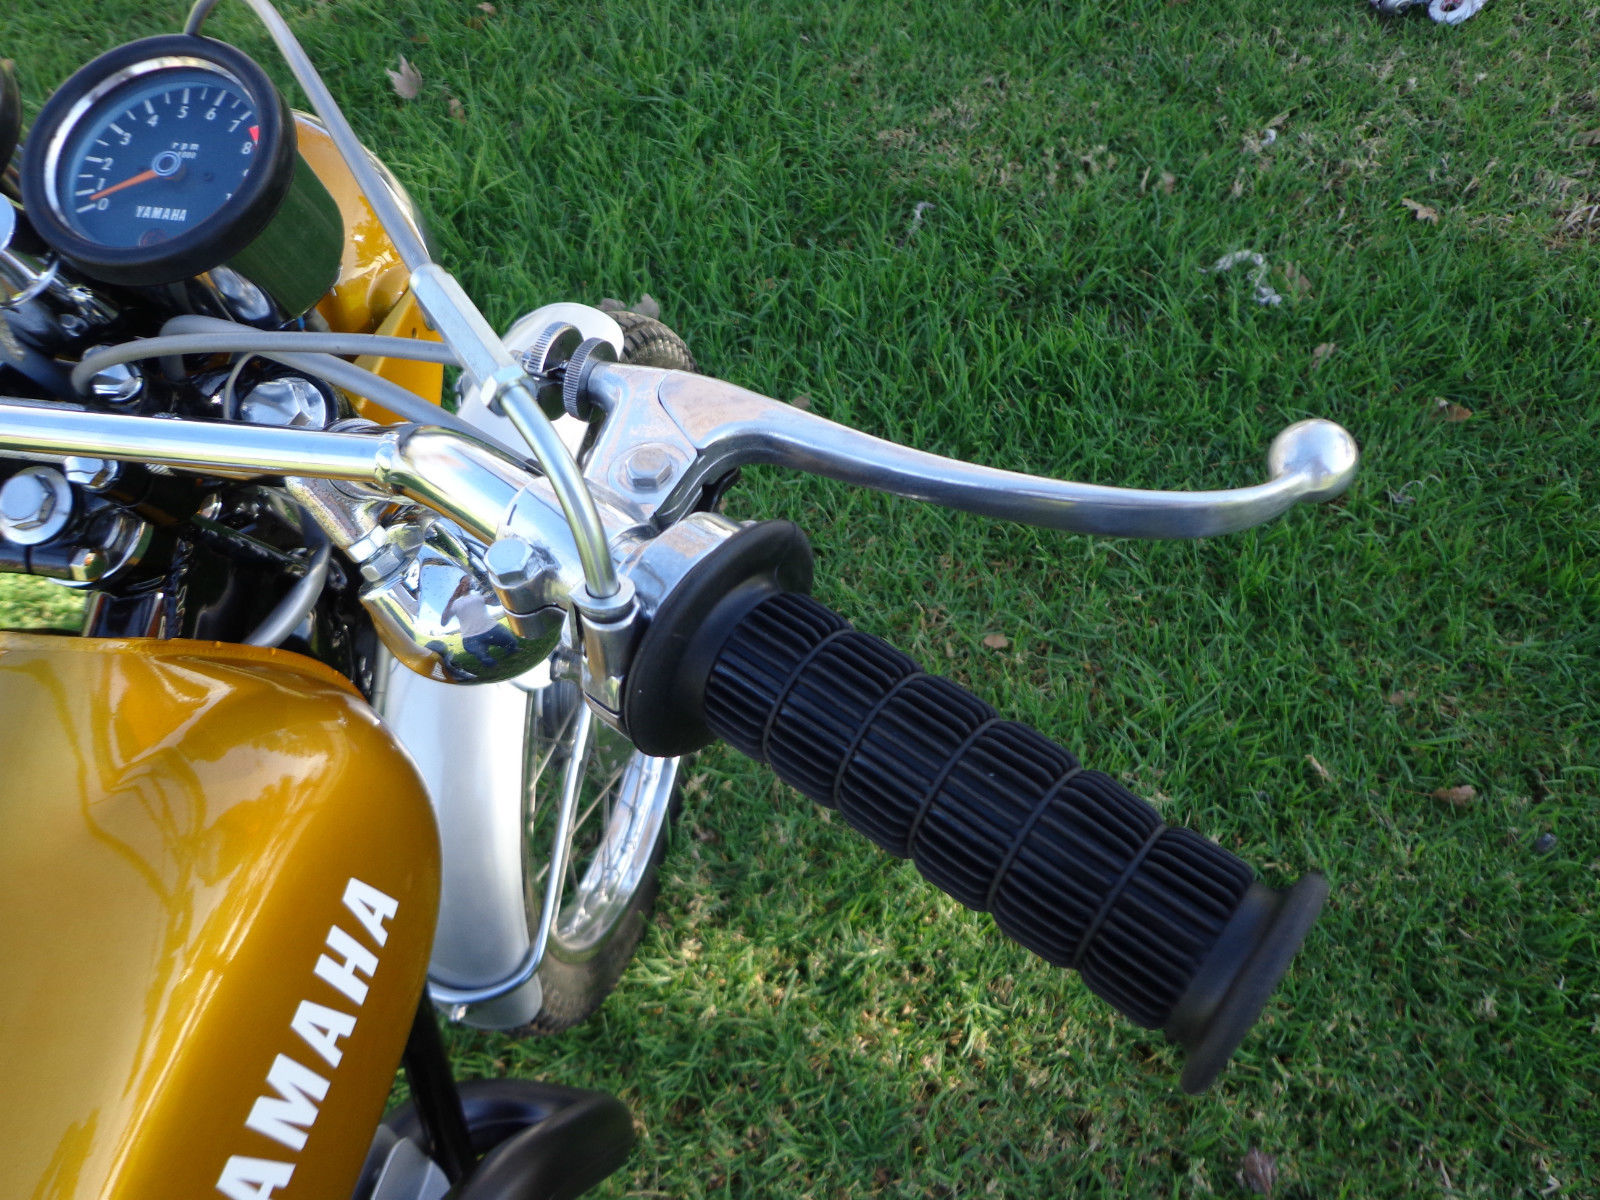 Yamaha DT250 - 1972 - Grip, Clutch Lever and Indicator.